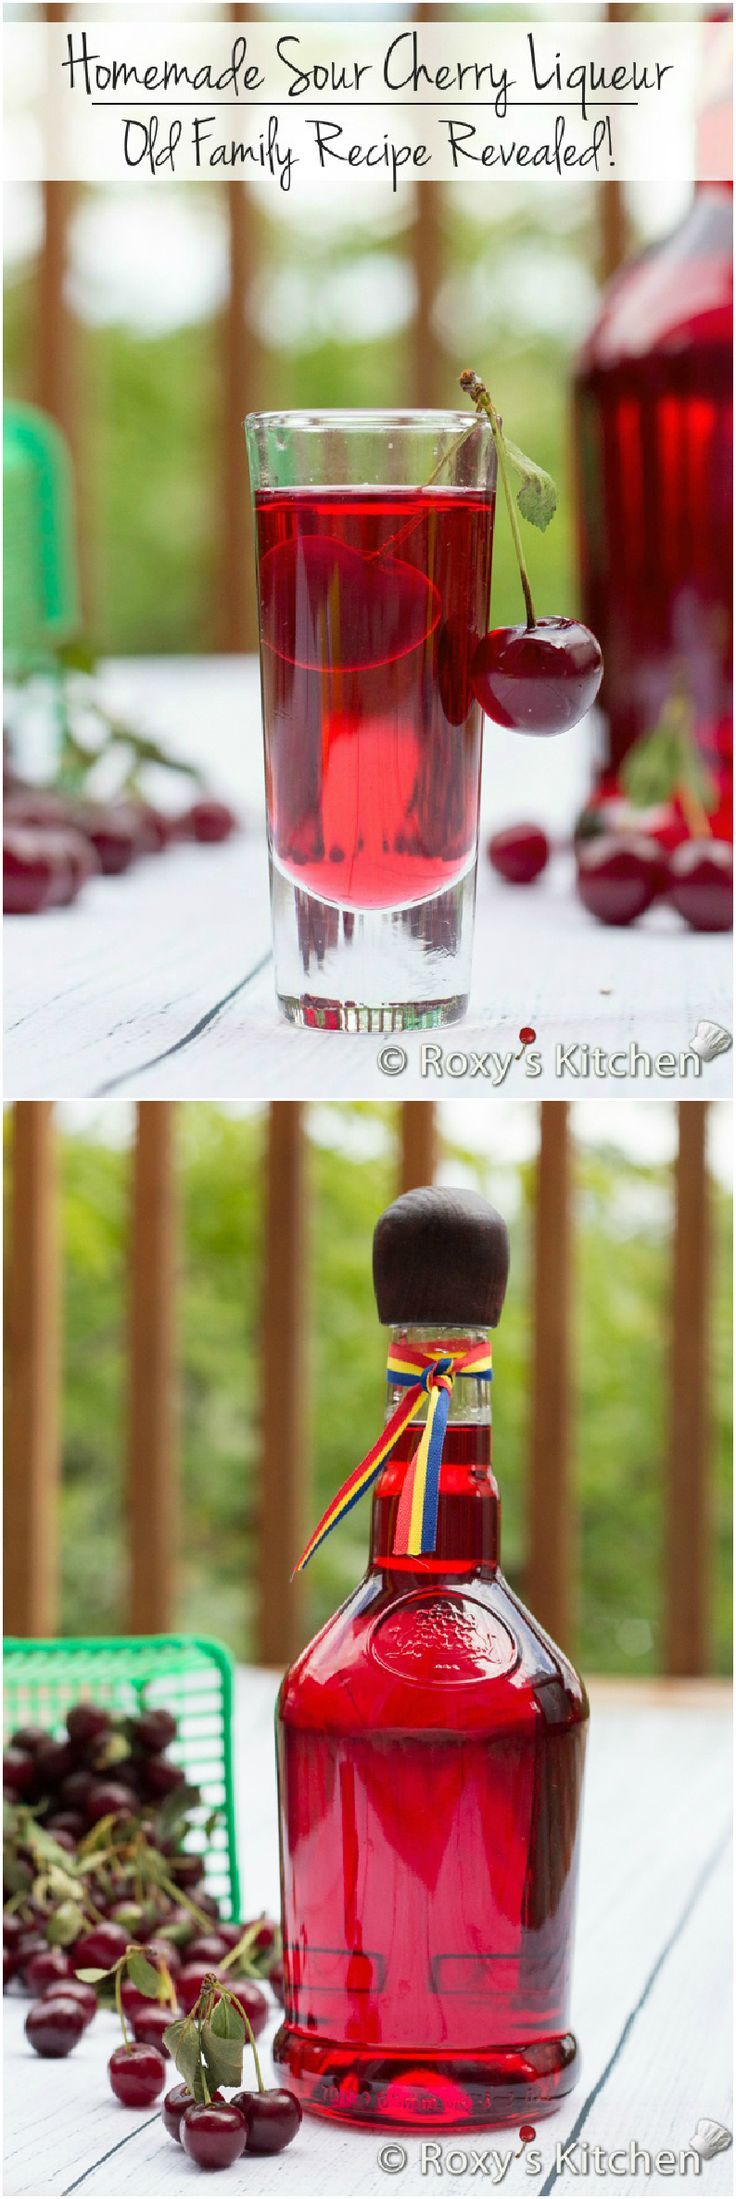 Homemade Sour Cherry Liqueur – Easy Old Family Recipe Revealed! - Roxy's Kitchen... Only four ingredients required! #drinks #liqueurs